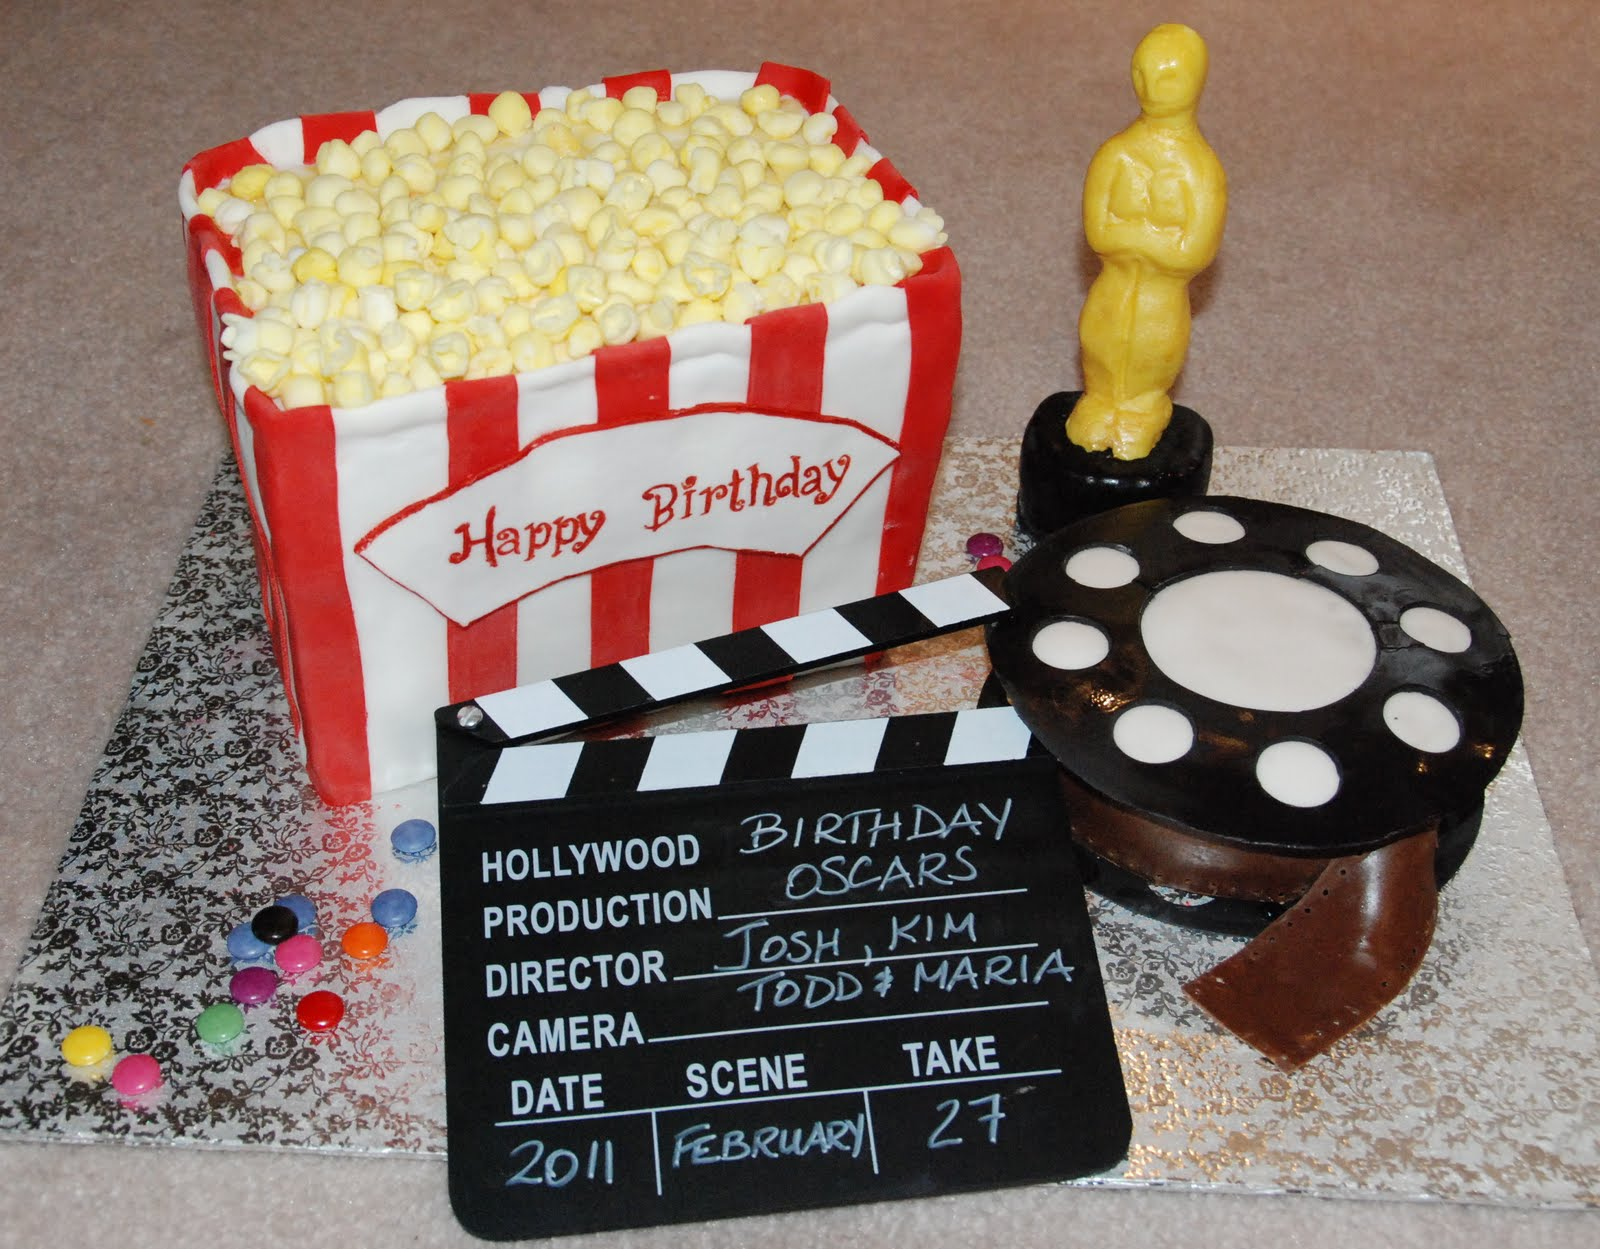 Movie Film Tv Theme Cakes Cupcakes Mumbai 15 on oscar cupcakes design